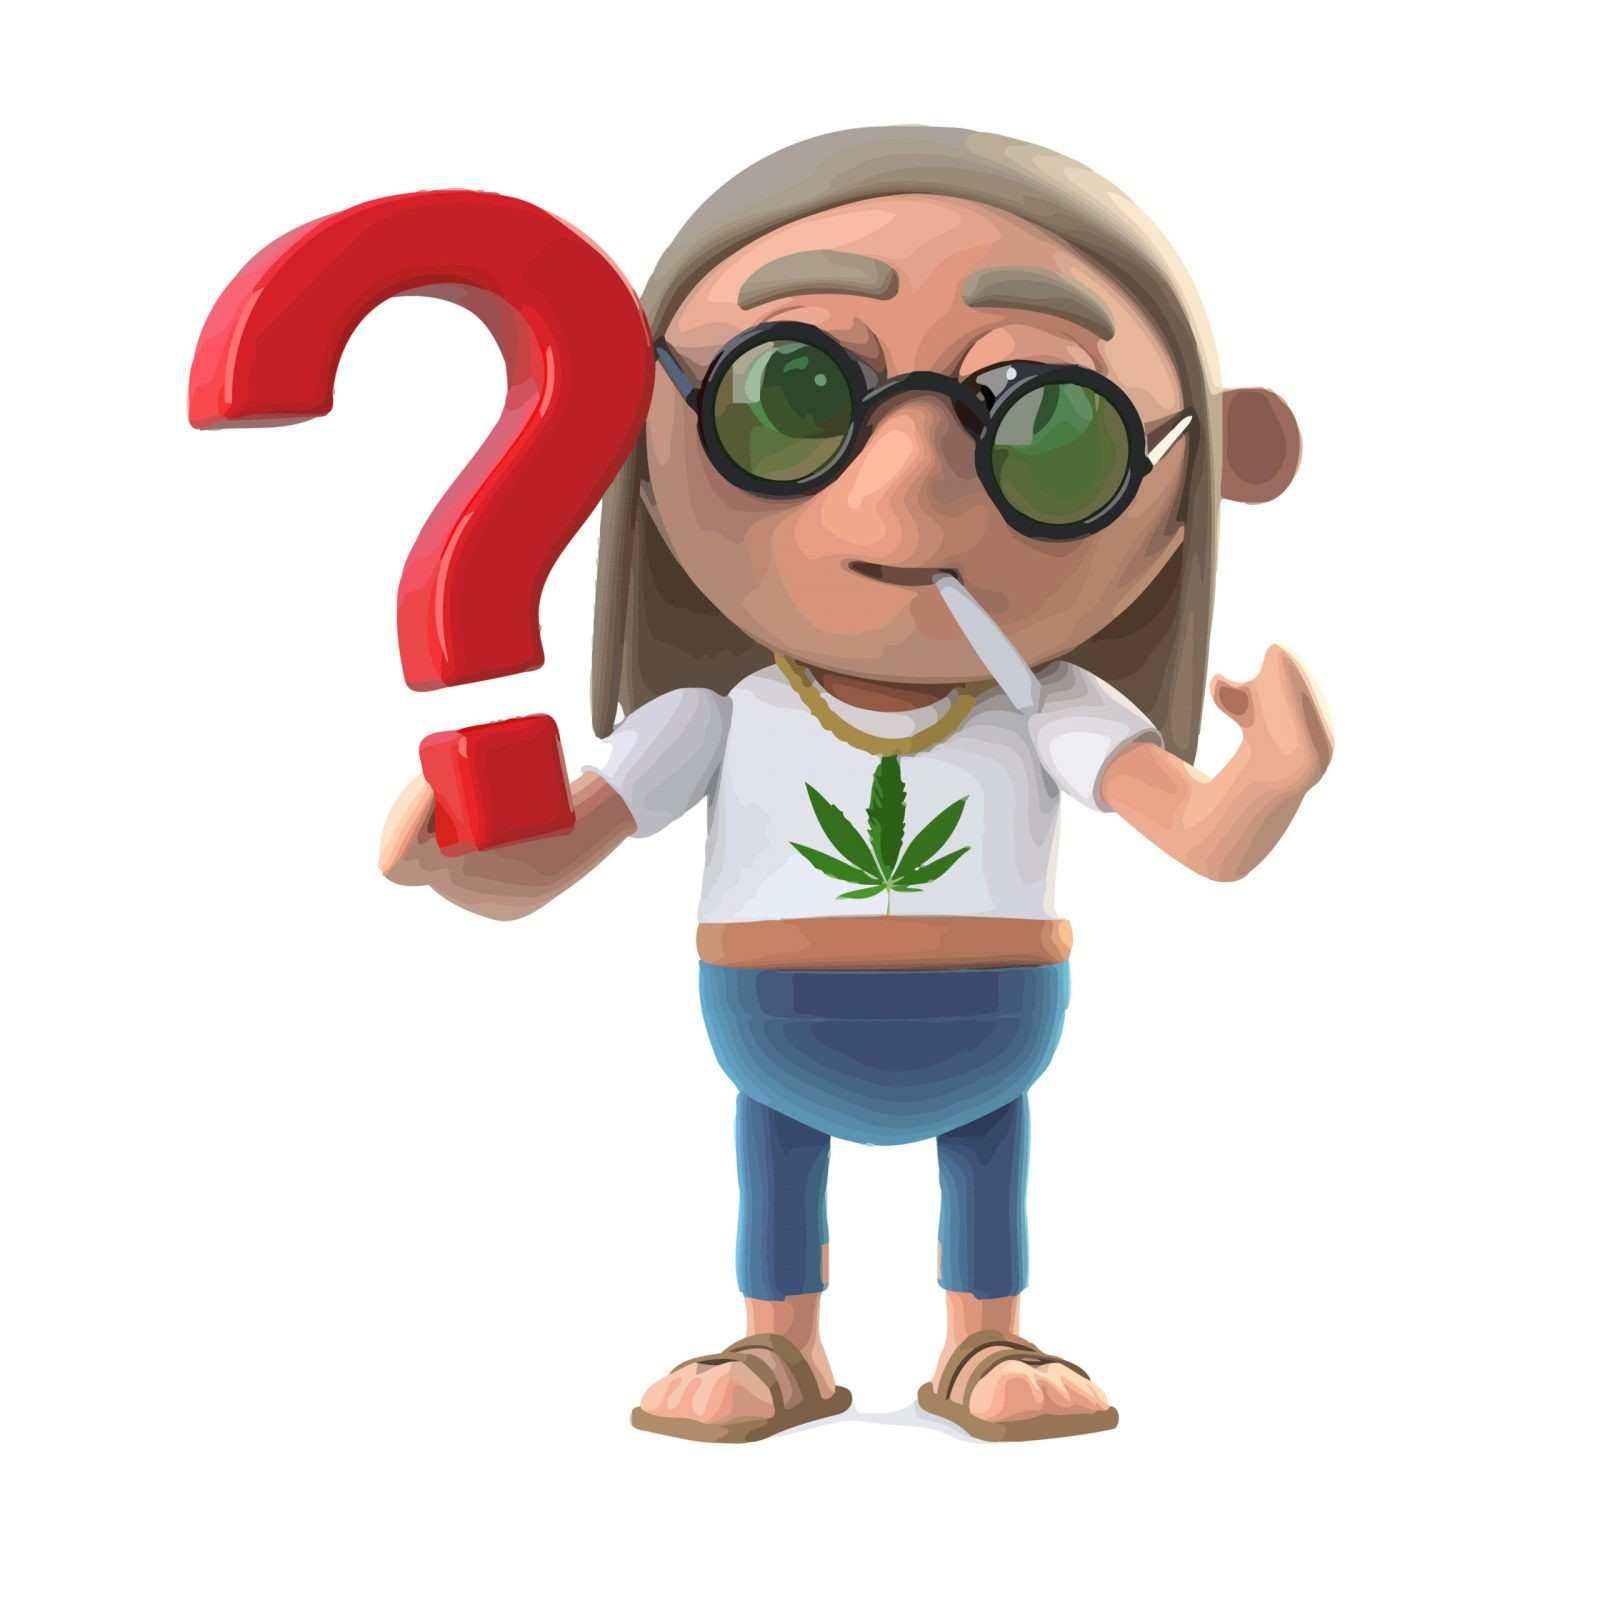 3d render of a hippie stoner holding a question mark symbol